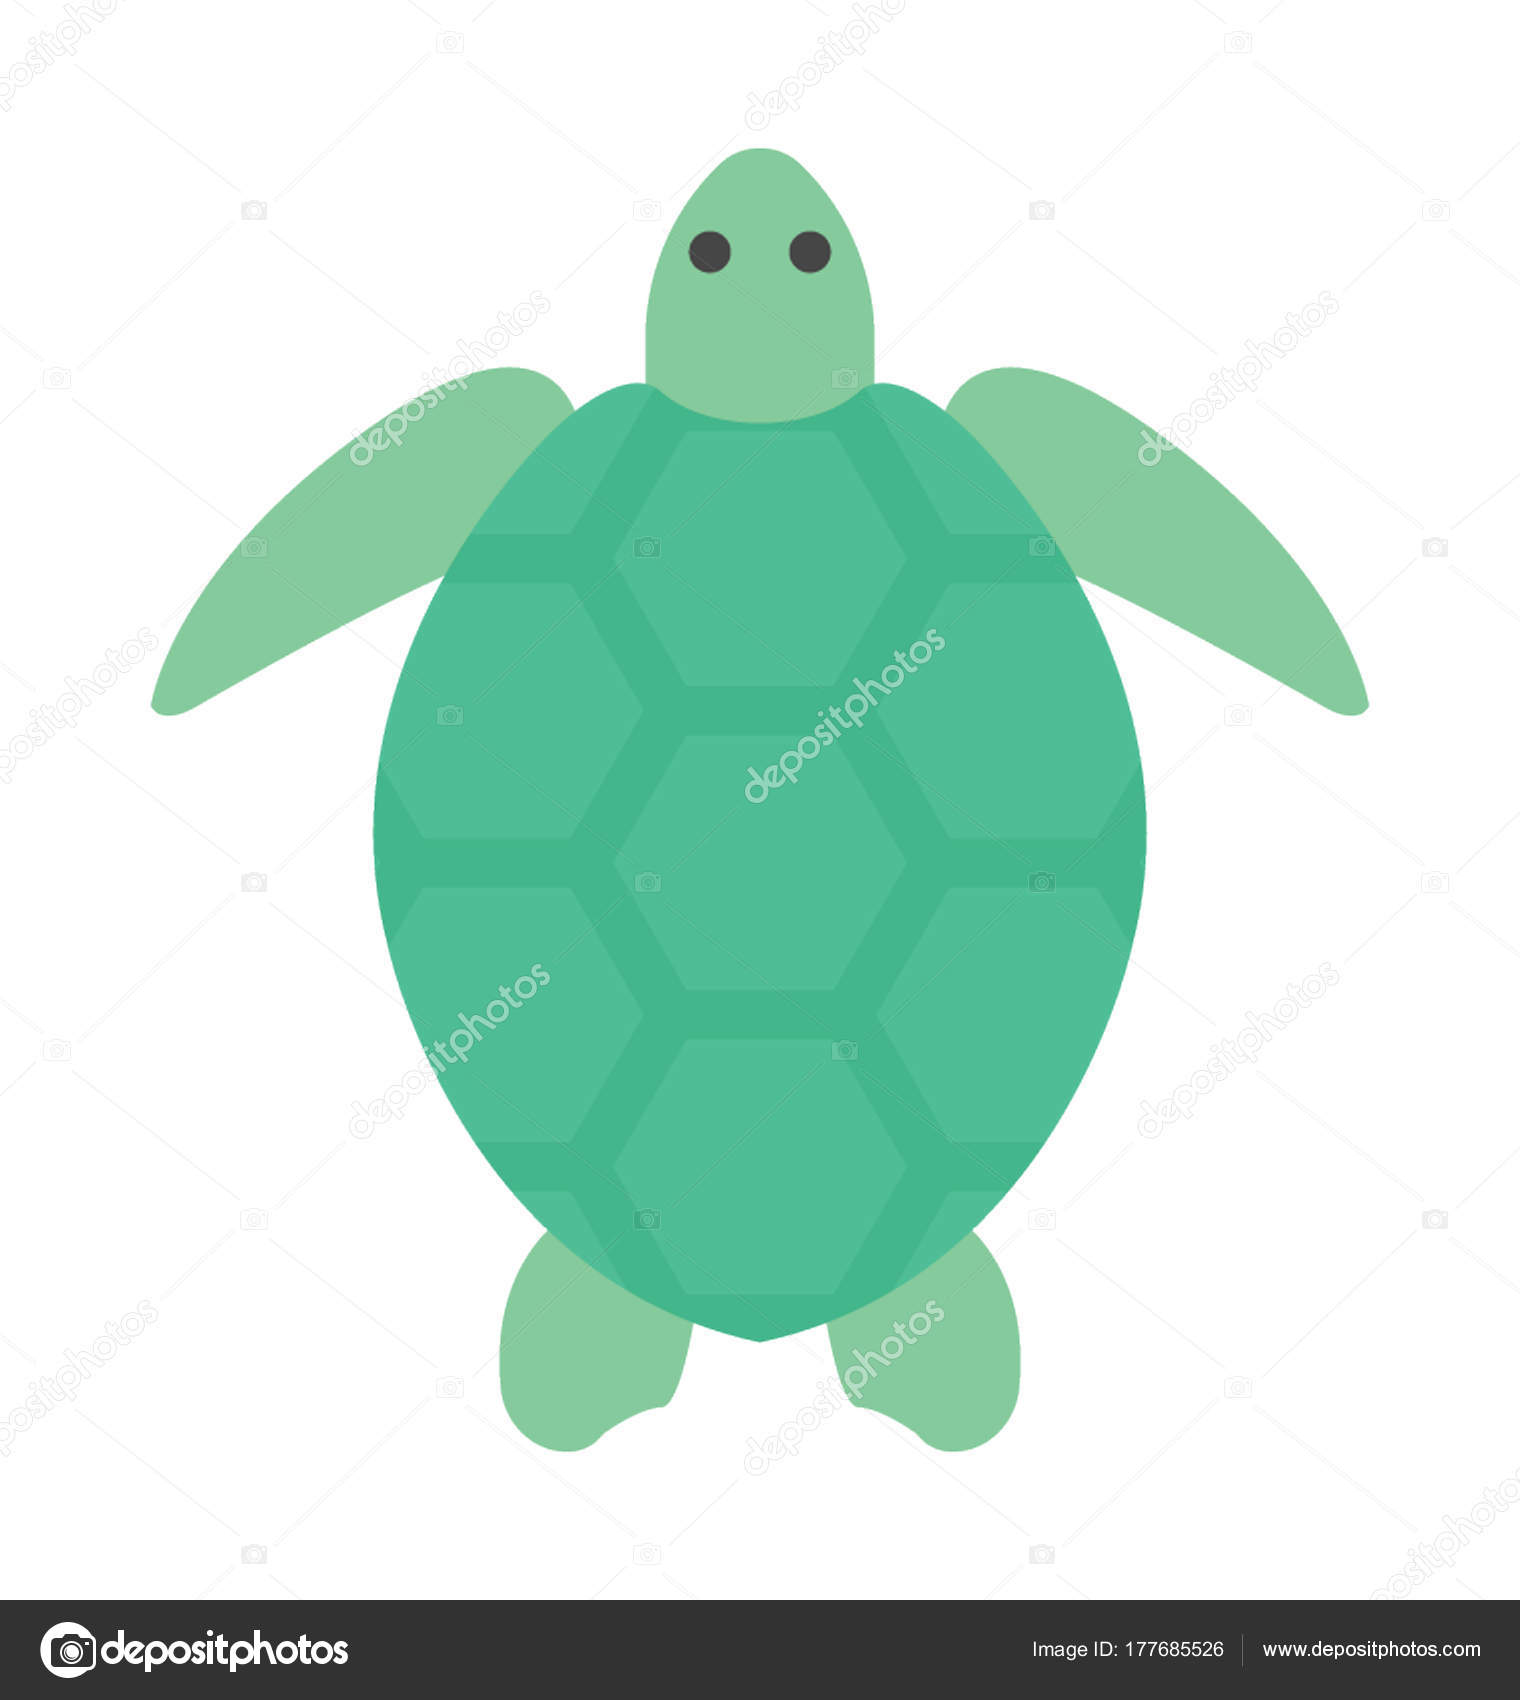 green color sea turtle top view flat vector icon stock vector rh depositphotos com Sea Turtle Silhouette Sea Turtle SVG